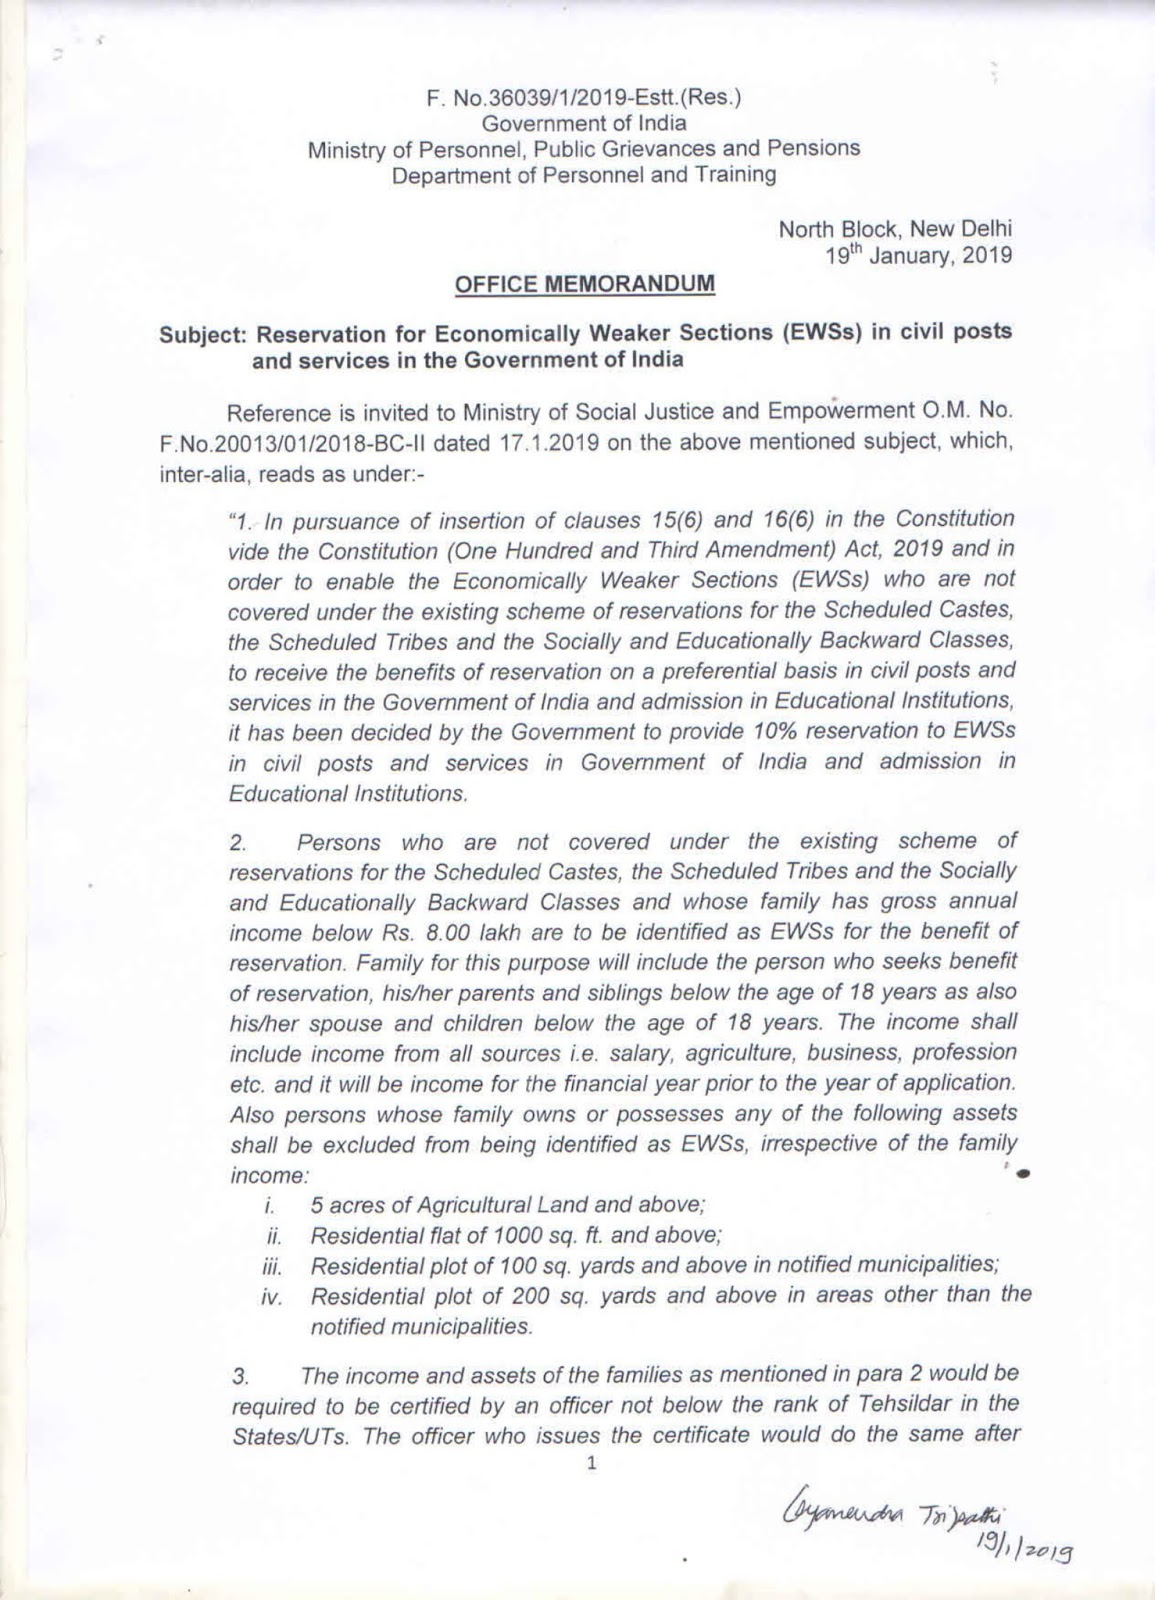 Reservation for Economically Weaker Sections (EWSs) in Civil Posts and Services in the Government of India